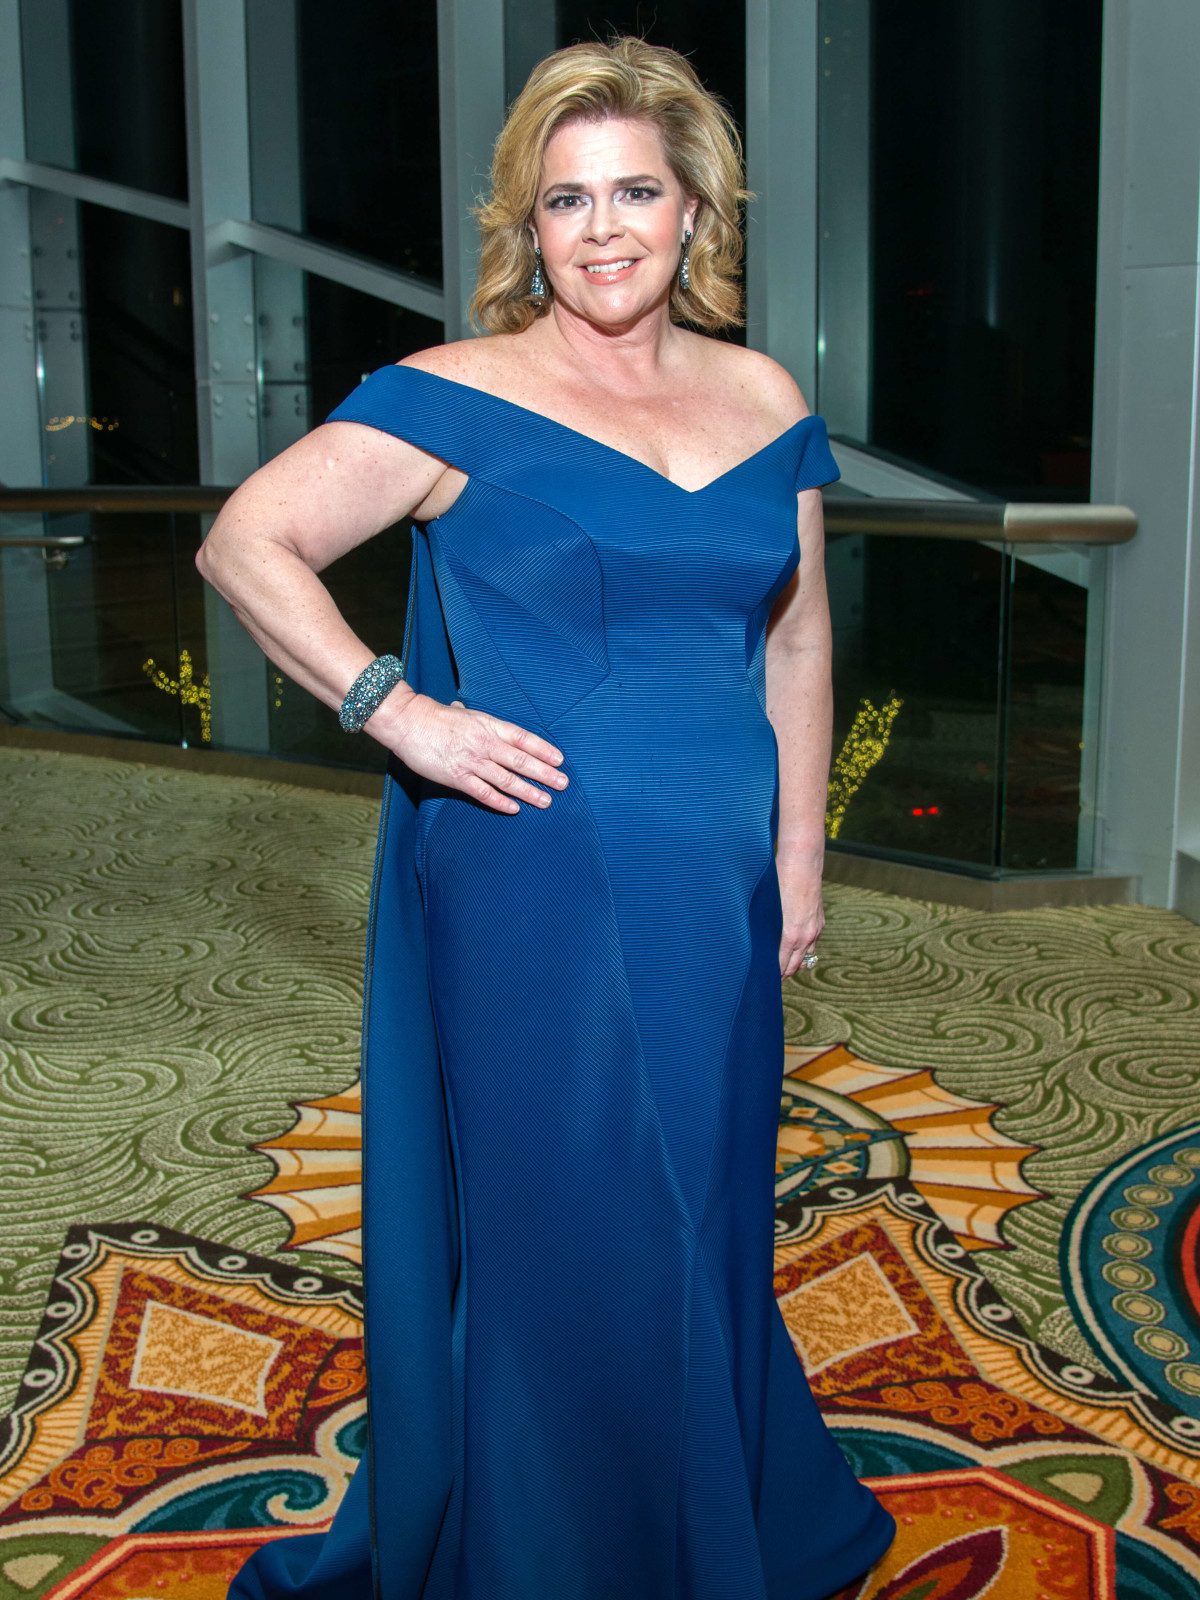 Houston, Women of Distinction fashionable gowns, Feb 2017, Kelli Weinzierl